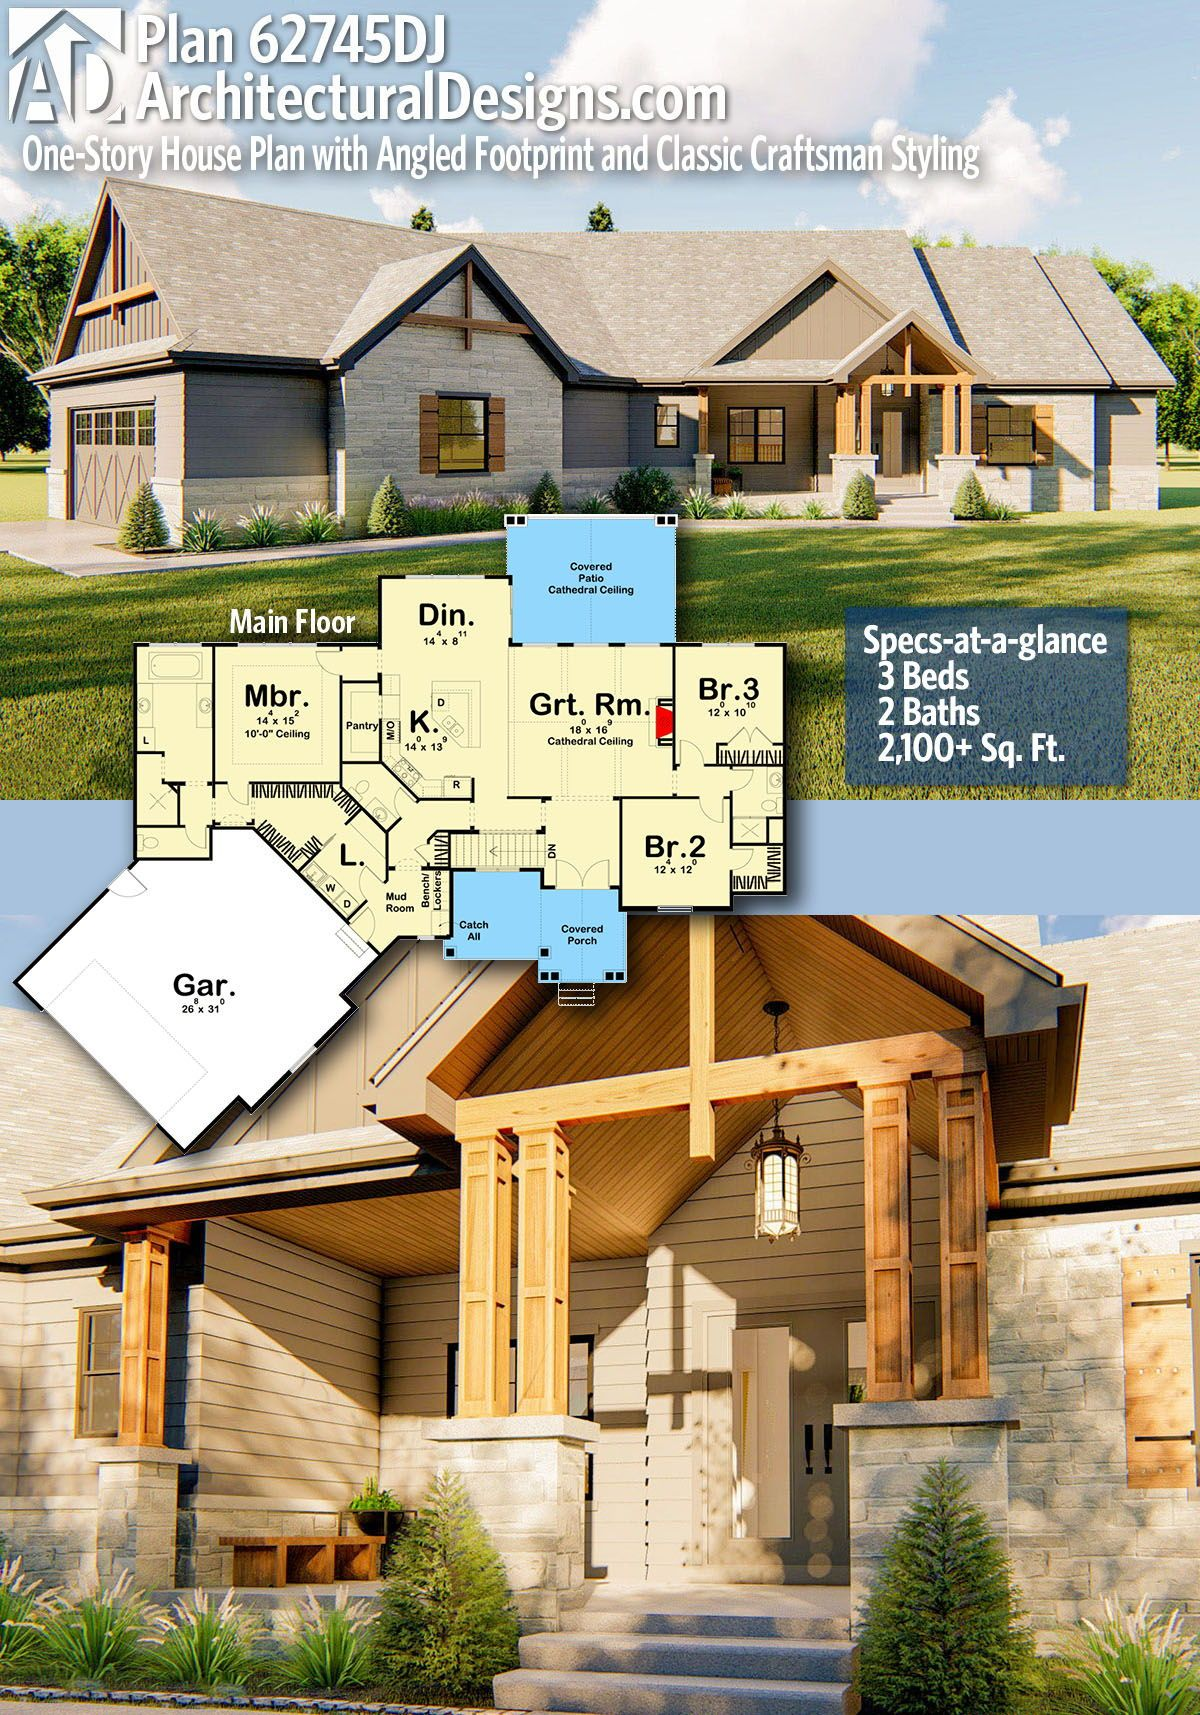 Plan 62745dj One Story House Plan With Angled Footprint And Classic Craftsman Styling House Plans Craftsman House New House Plans